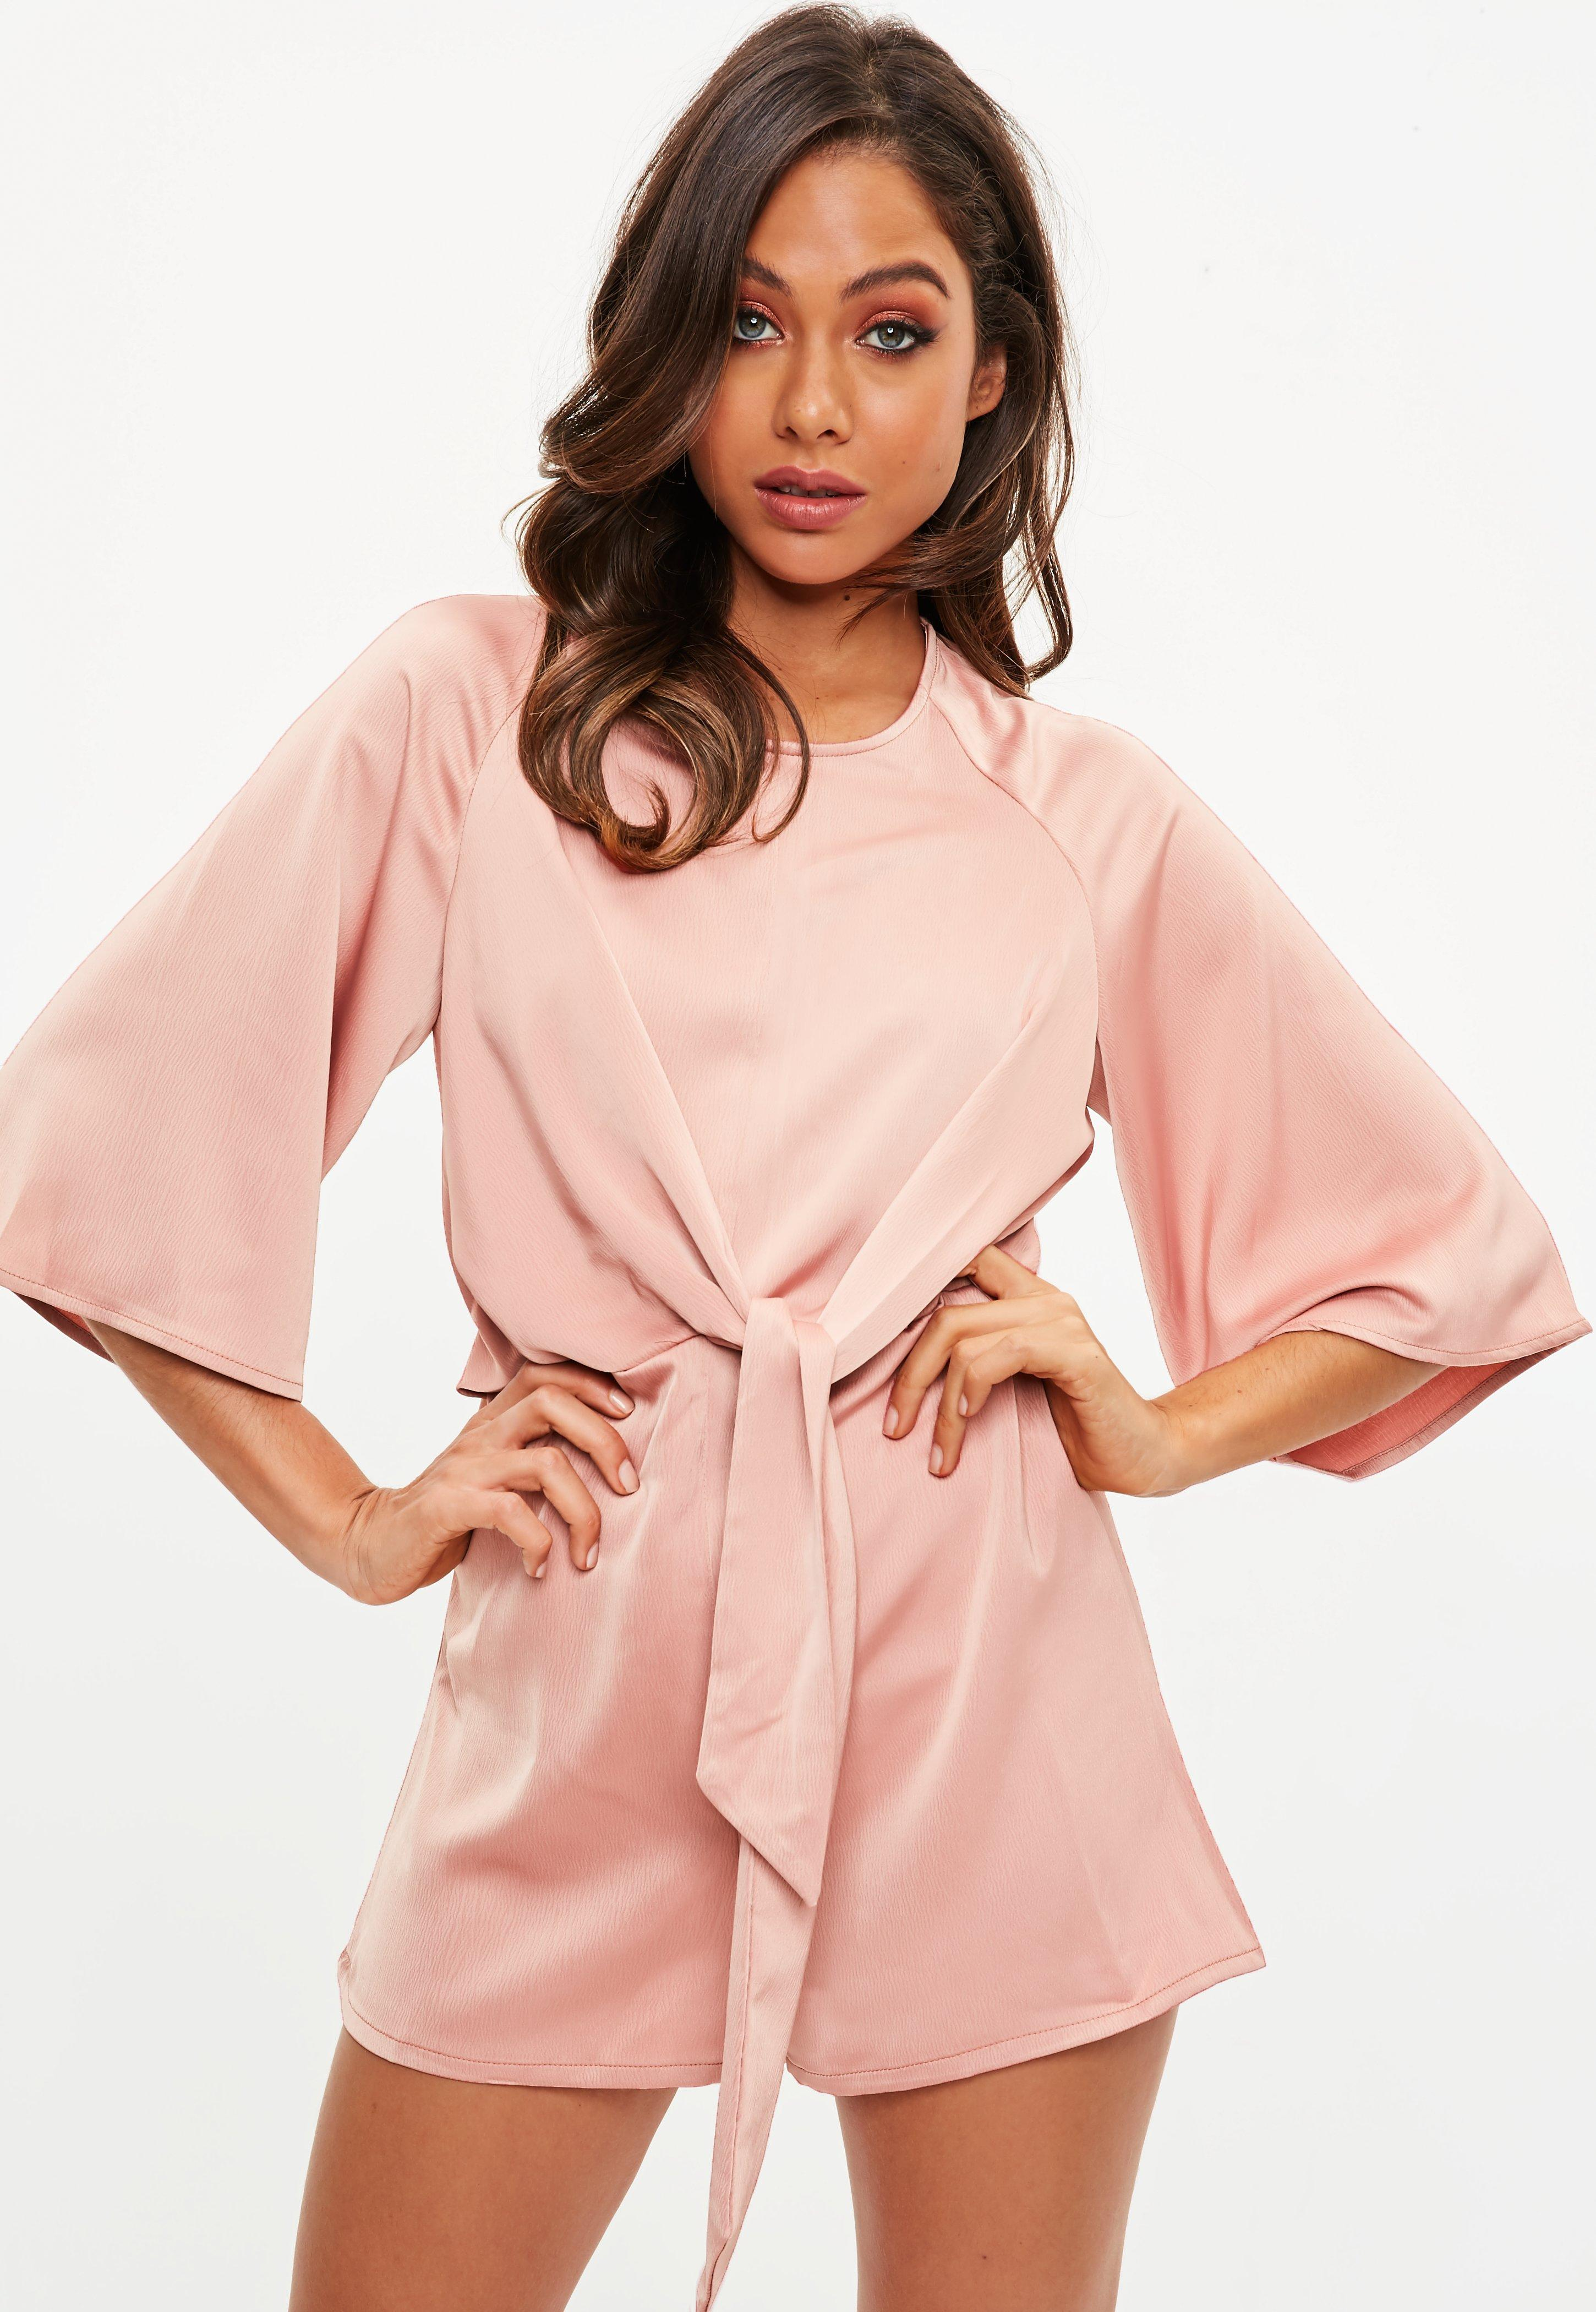 Formal Rompers - Women\'s Party Rompers Online | Missguided